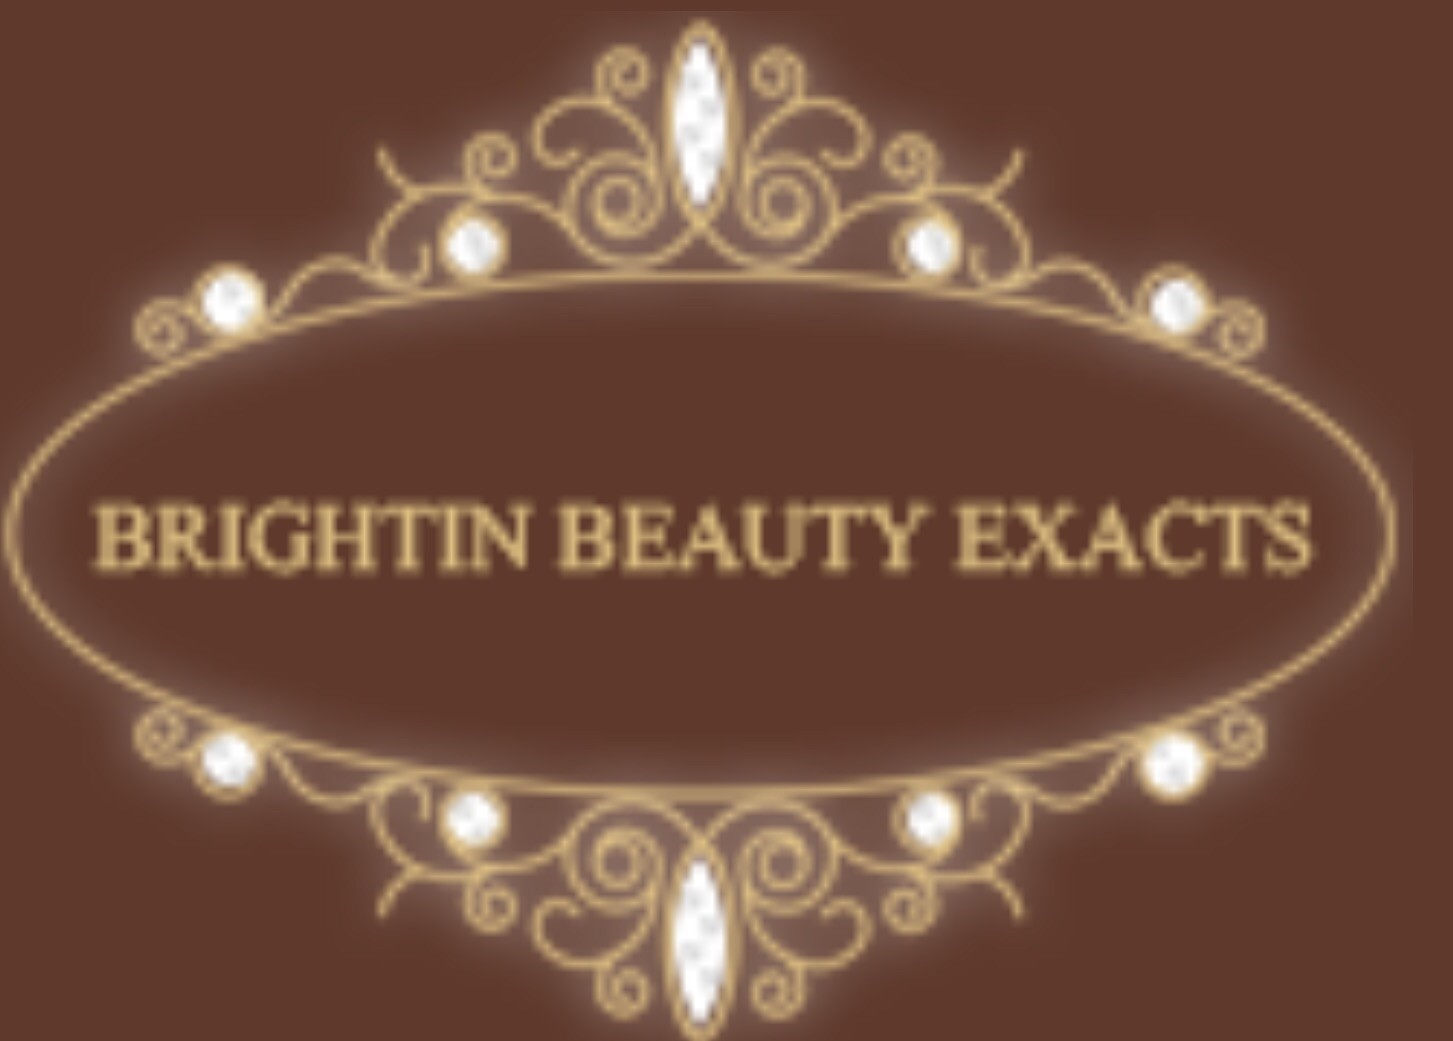 Brightin Beauty Exacts